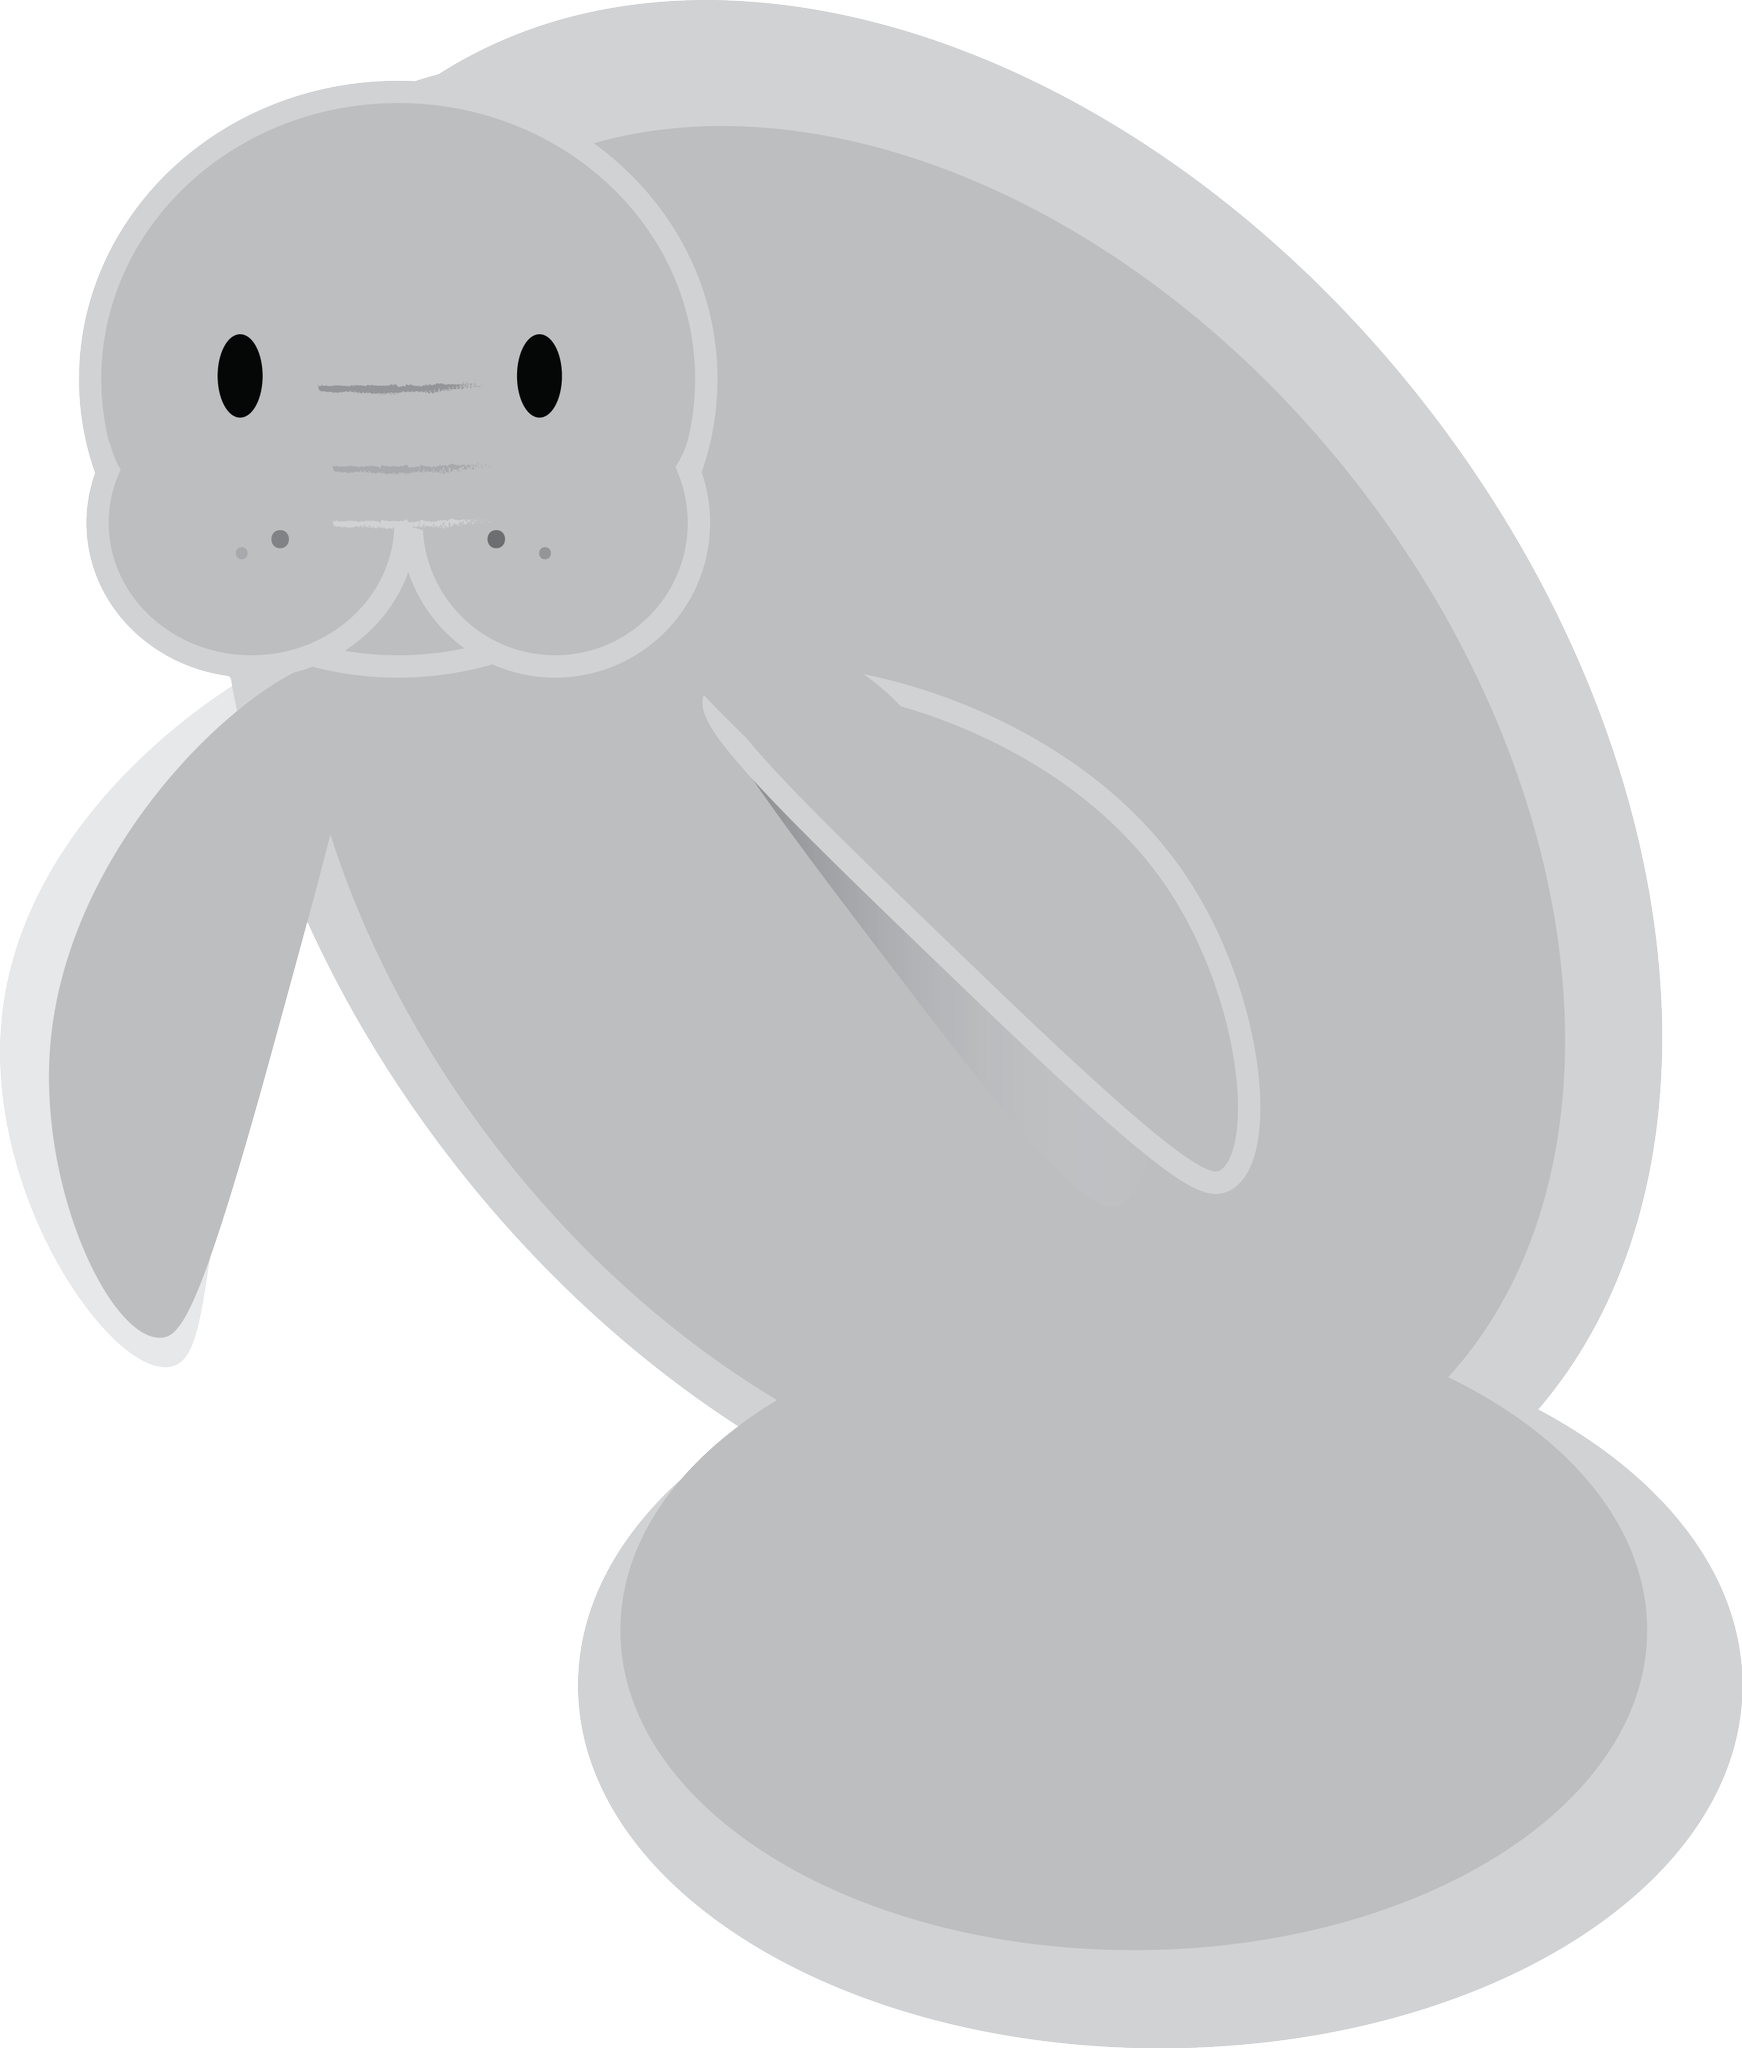 Myfwc on twitter help. Manatee clipart dugong